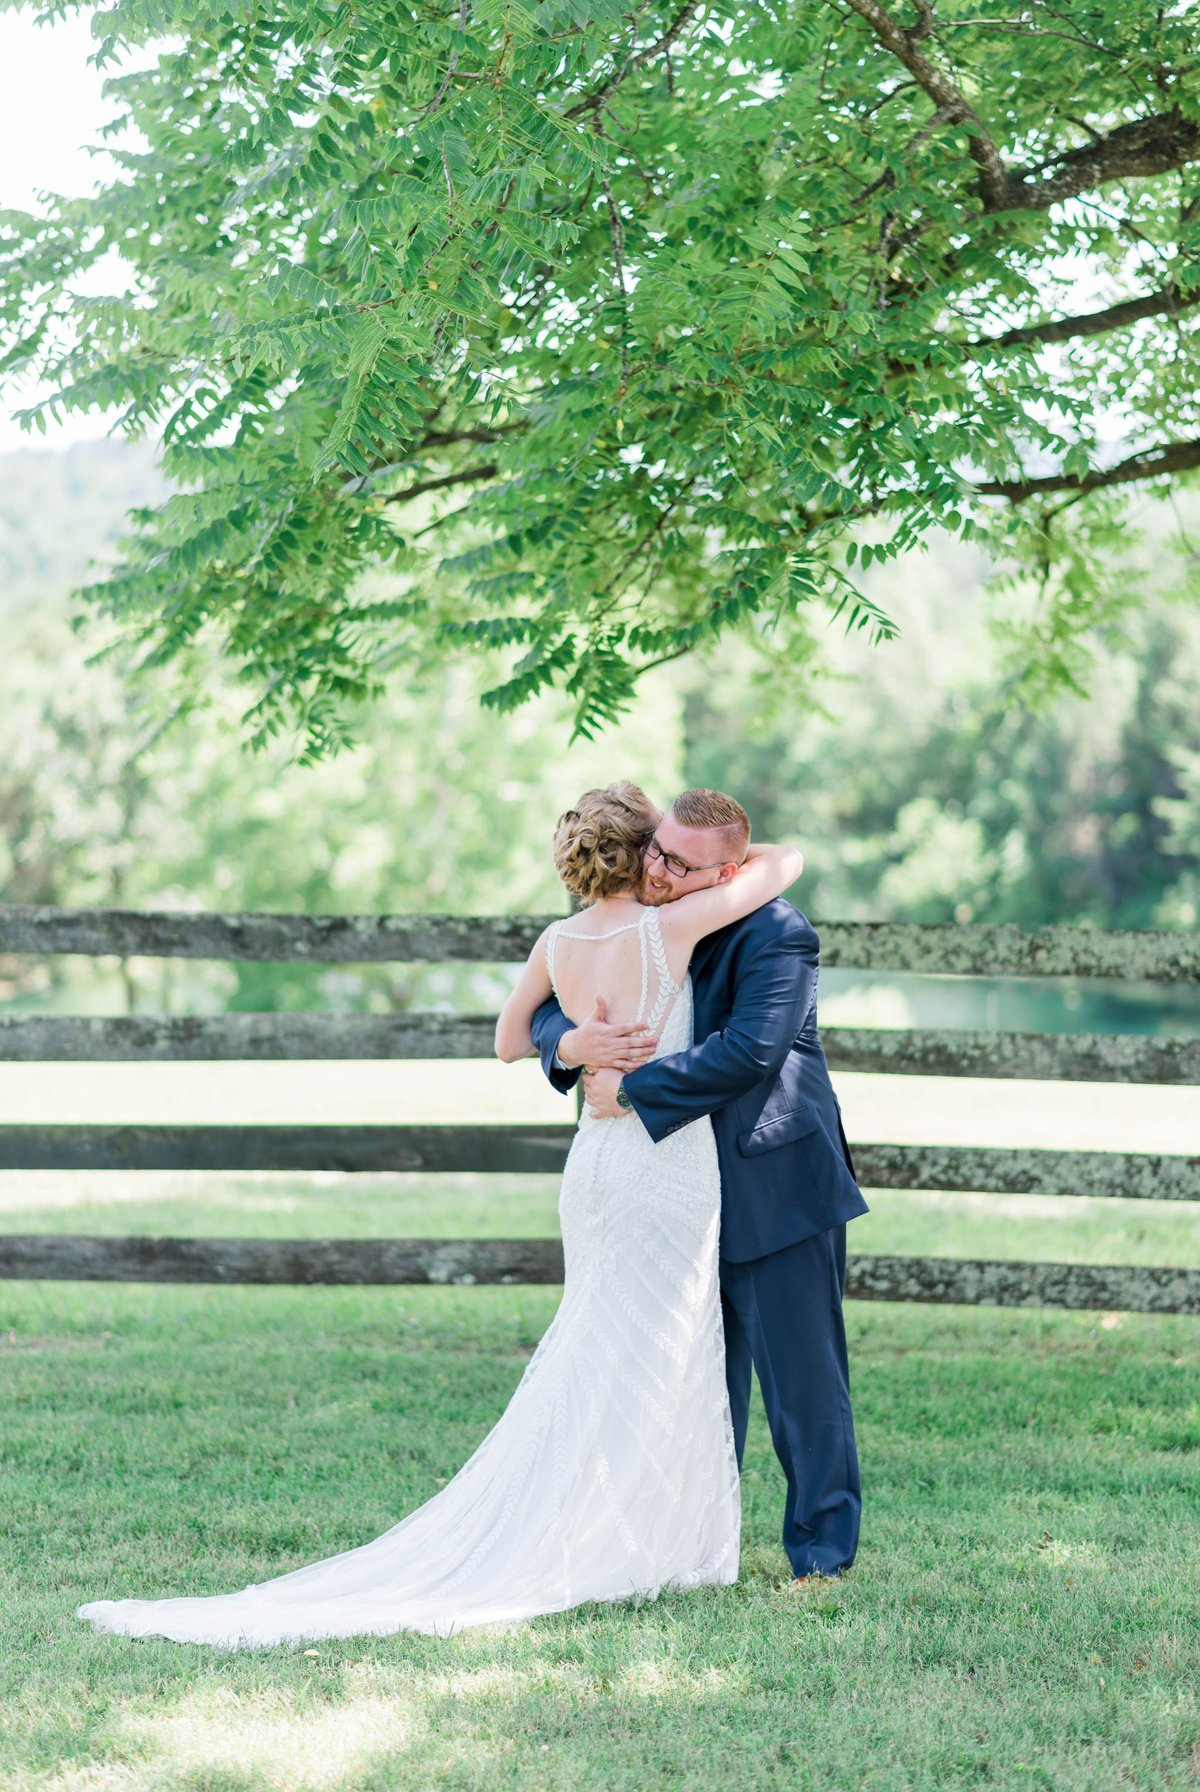 SorellaFarms_VirginiaWeddingPhotographer_BarnWedding_Lynchburgweddingphotographer_DanielleTyler+32